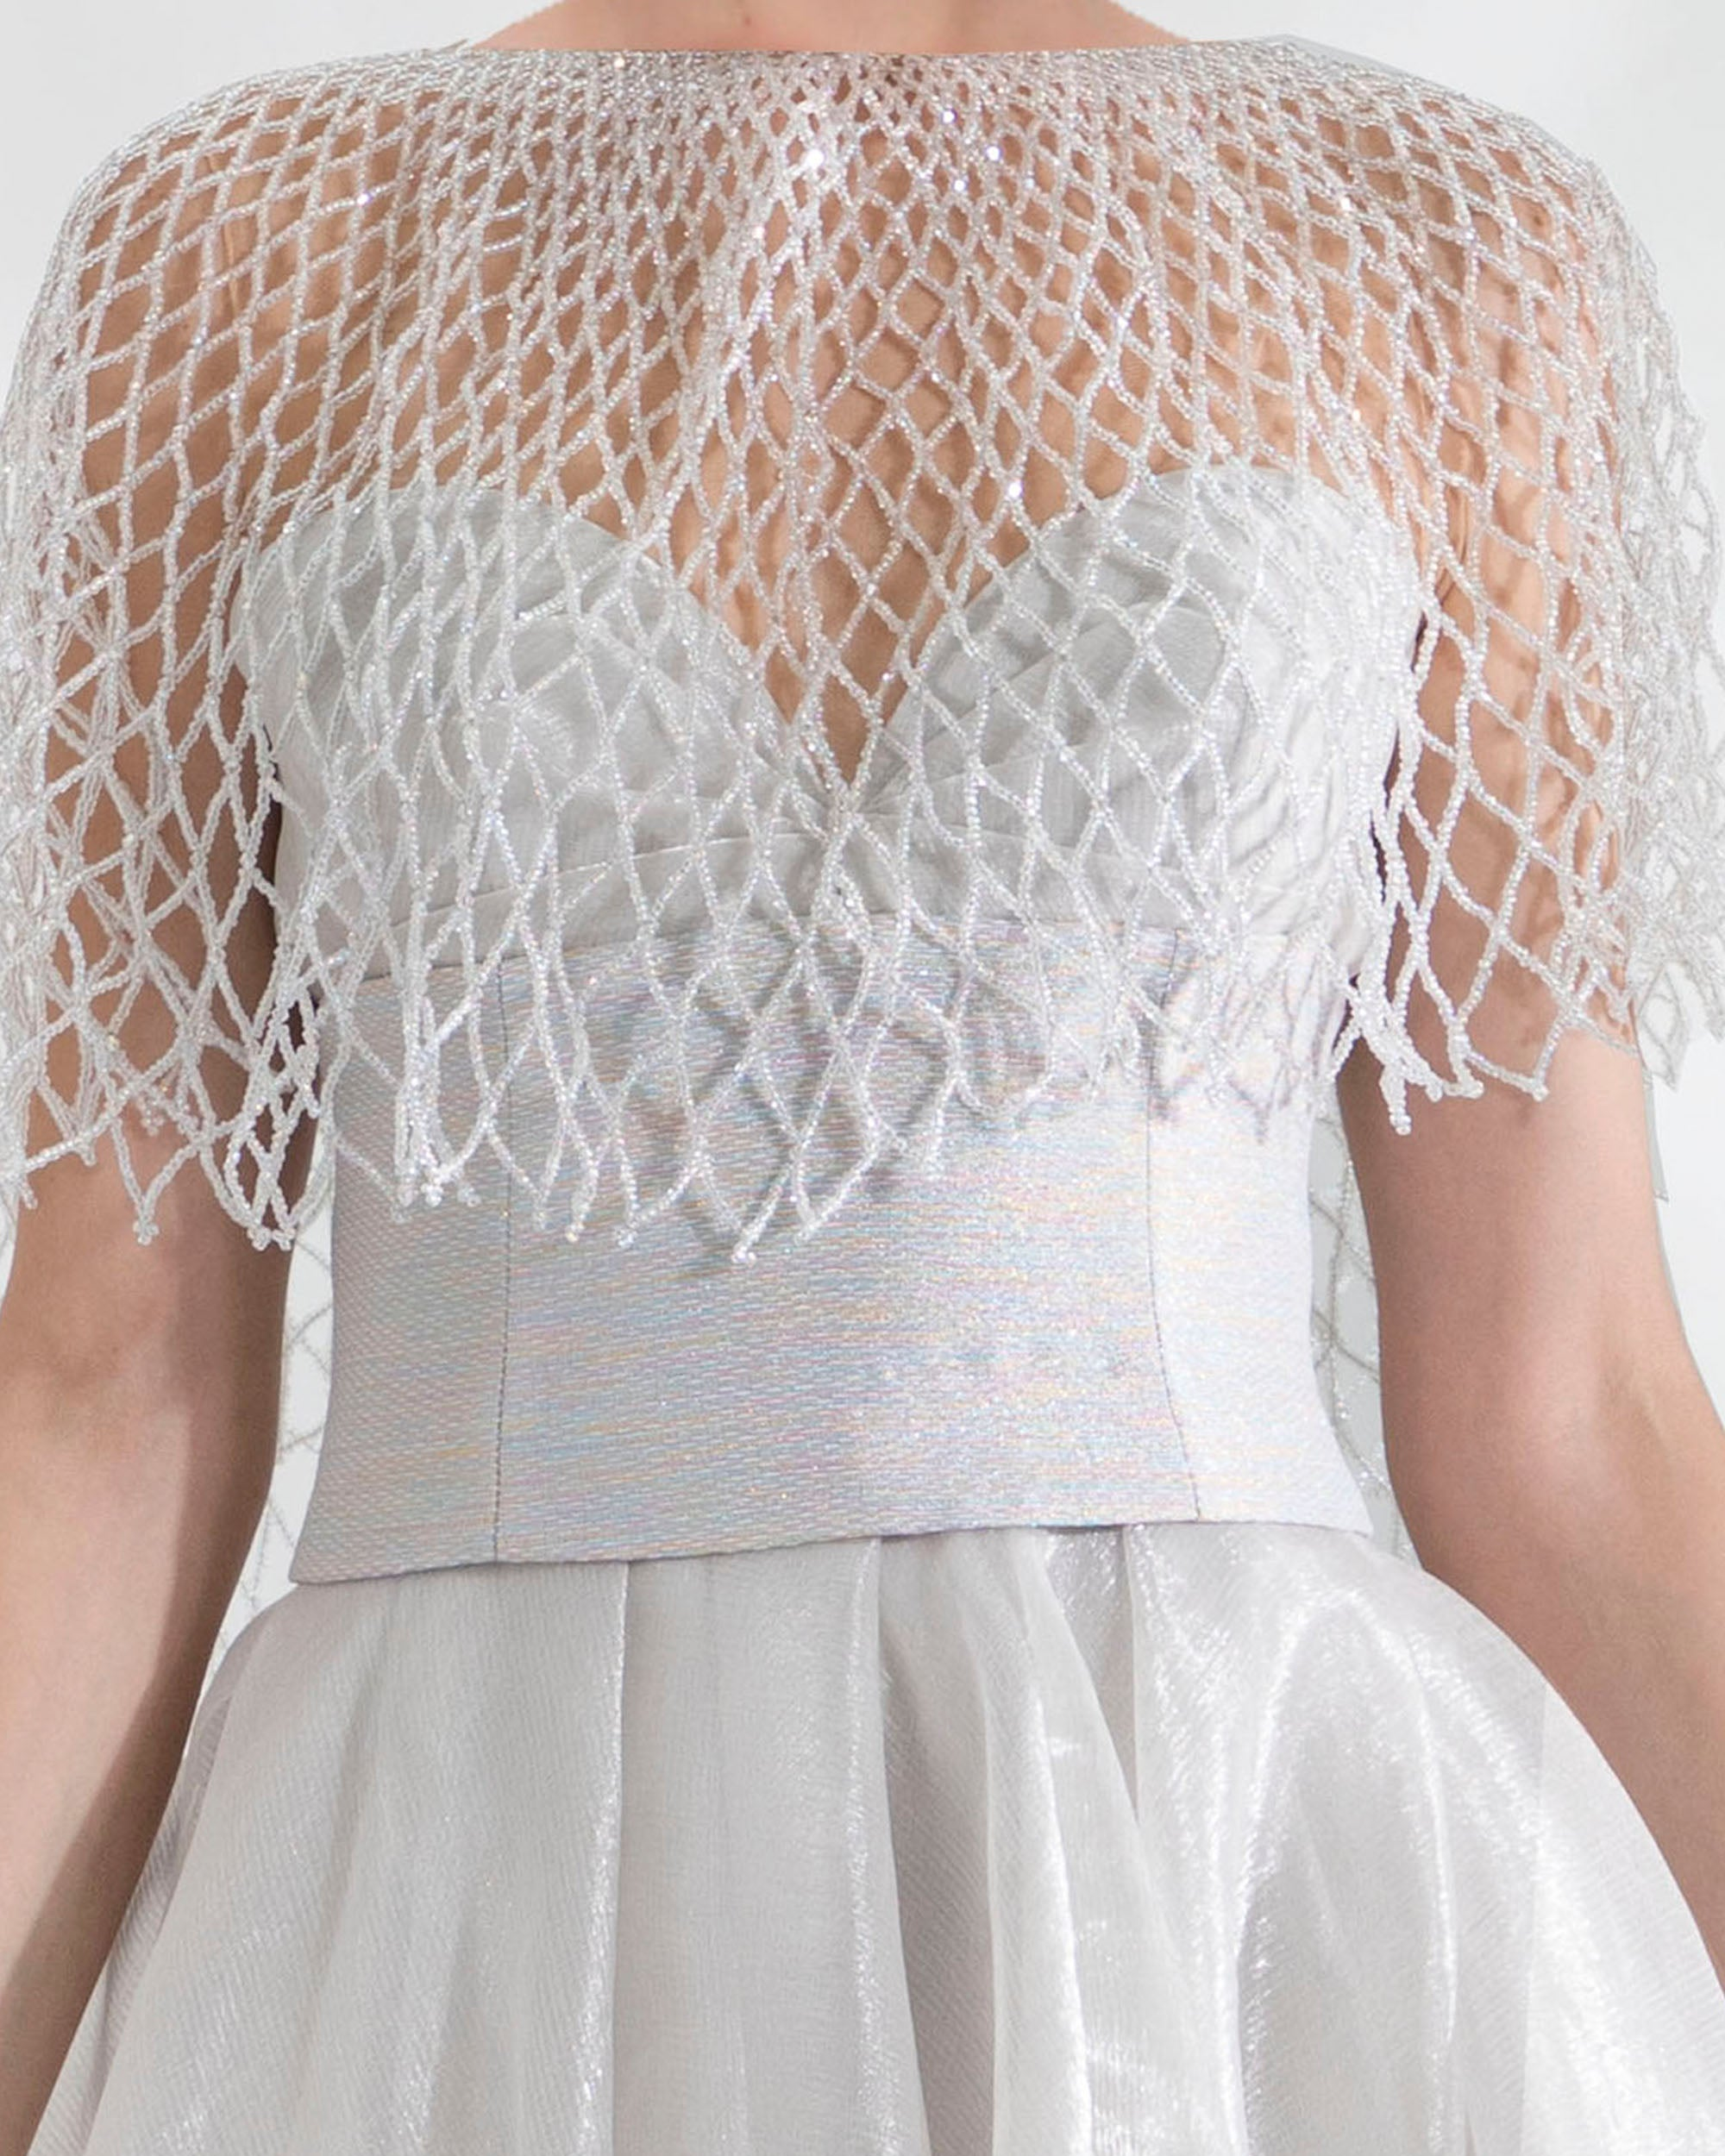 Beaded Fishnet Upper Part Dress